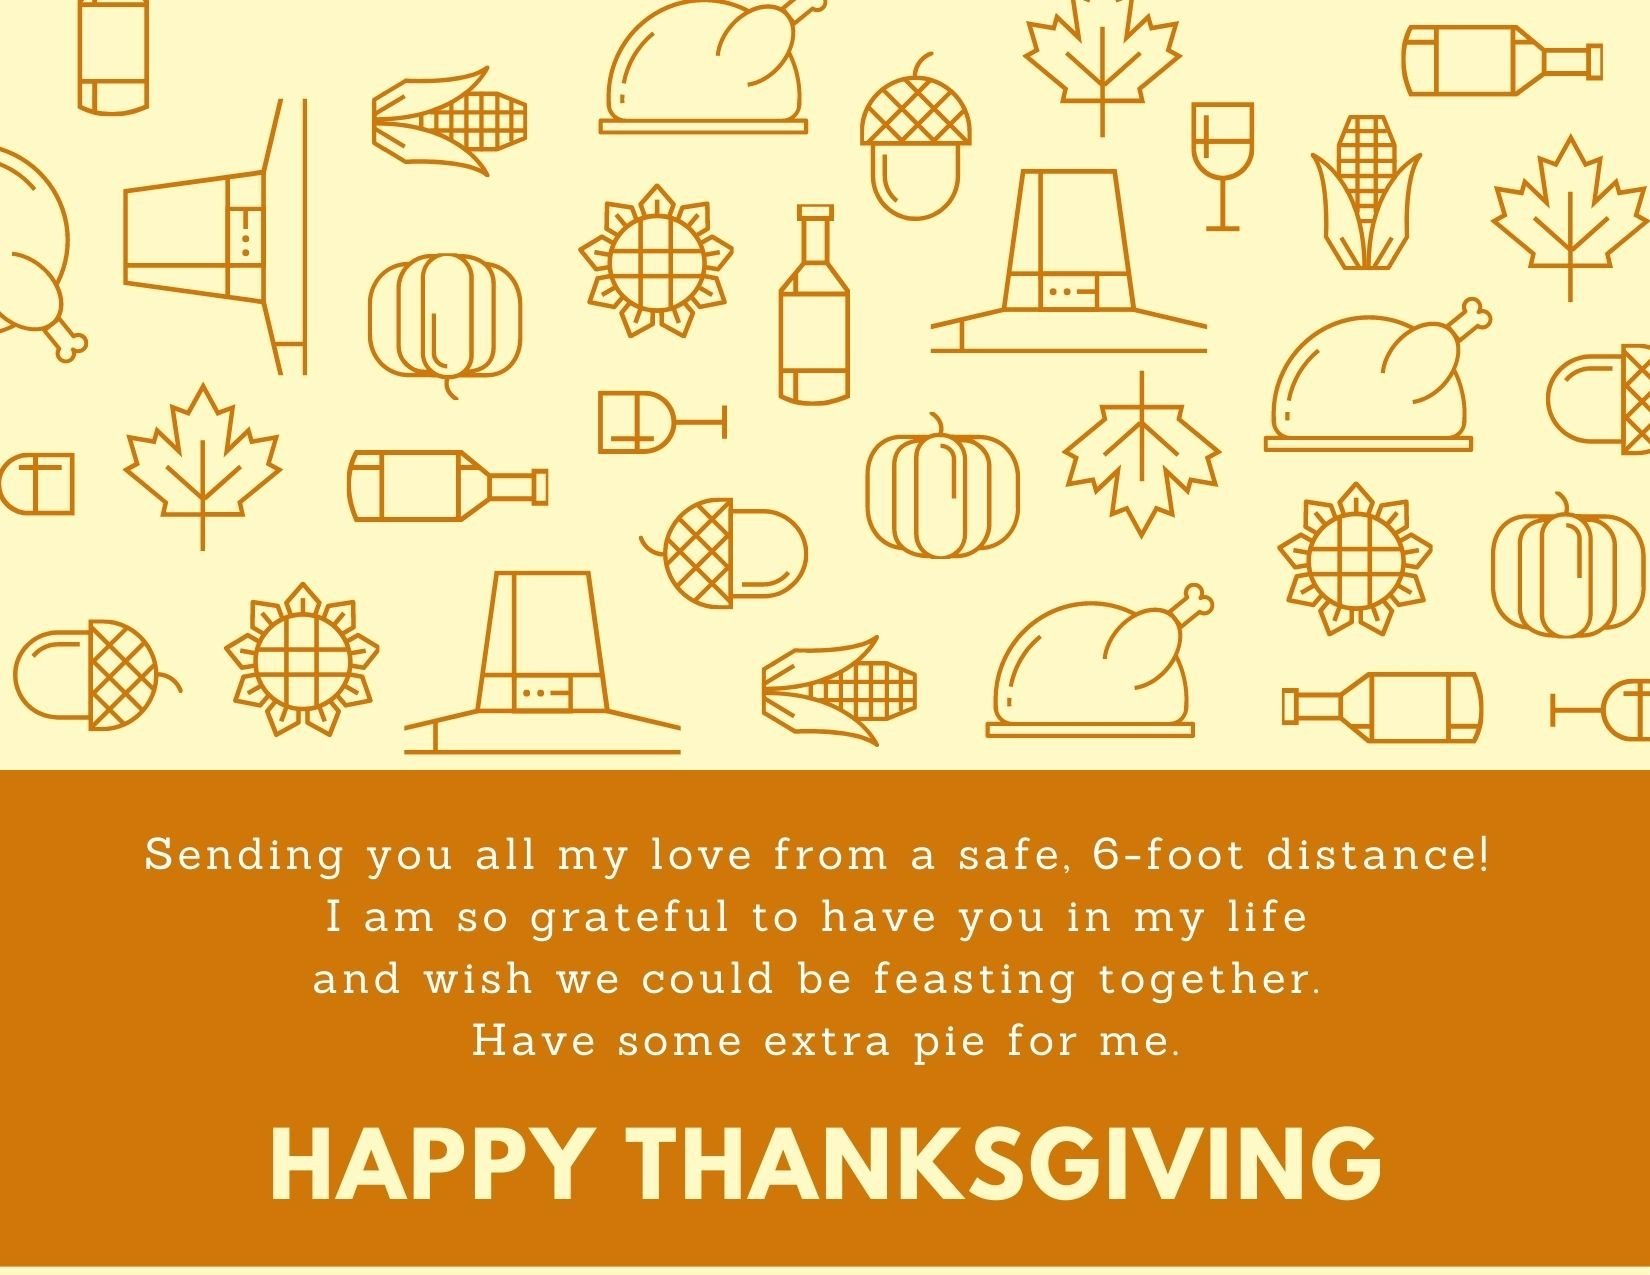 TEXT: Sending you all my love from a safe, 6-foot distance! I am so grateful to have you in my life and wish we could be feasting together. Have some extra pie for me. Happy Thanksgiving! IMAGE: pattern of outlined pumpkins, pilgrim hats, corn on the cob, acorns, bittles, sunflowers, turkeys, and wine glasses.